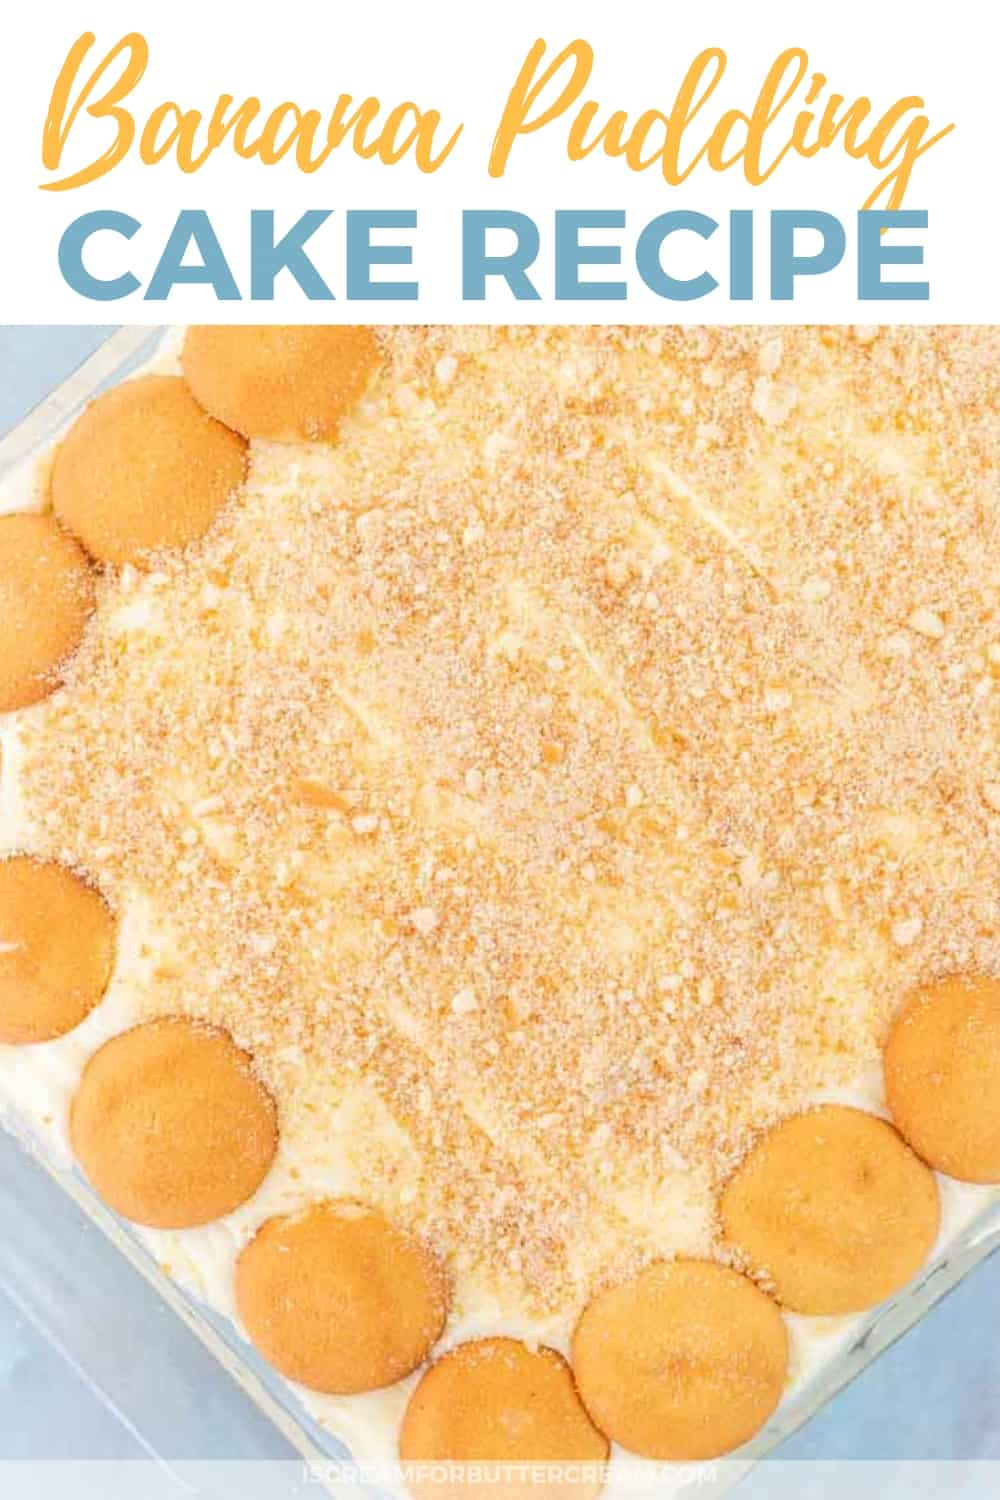 Banana Pudding Cake New Pinterest Graphic 1